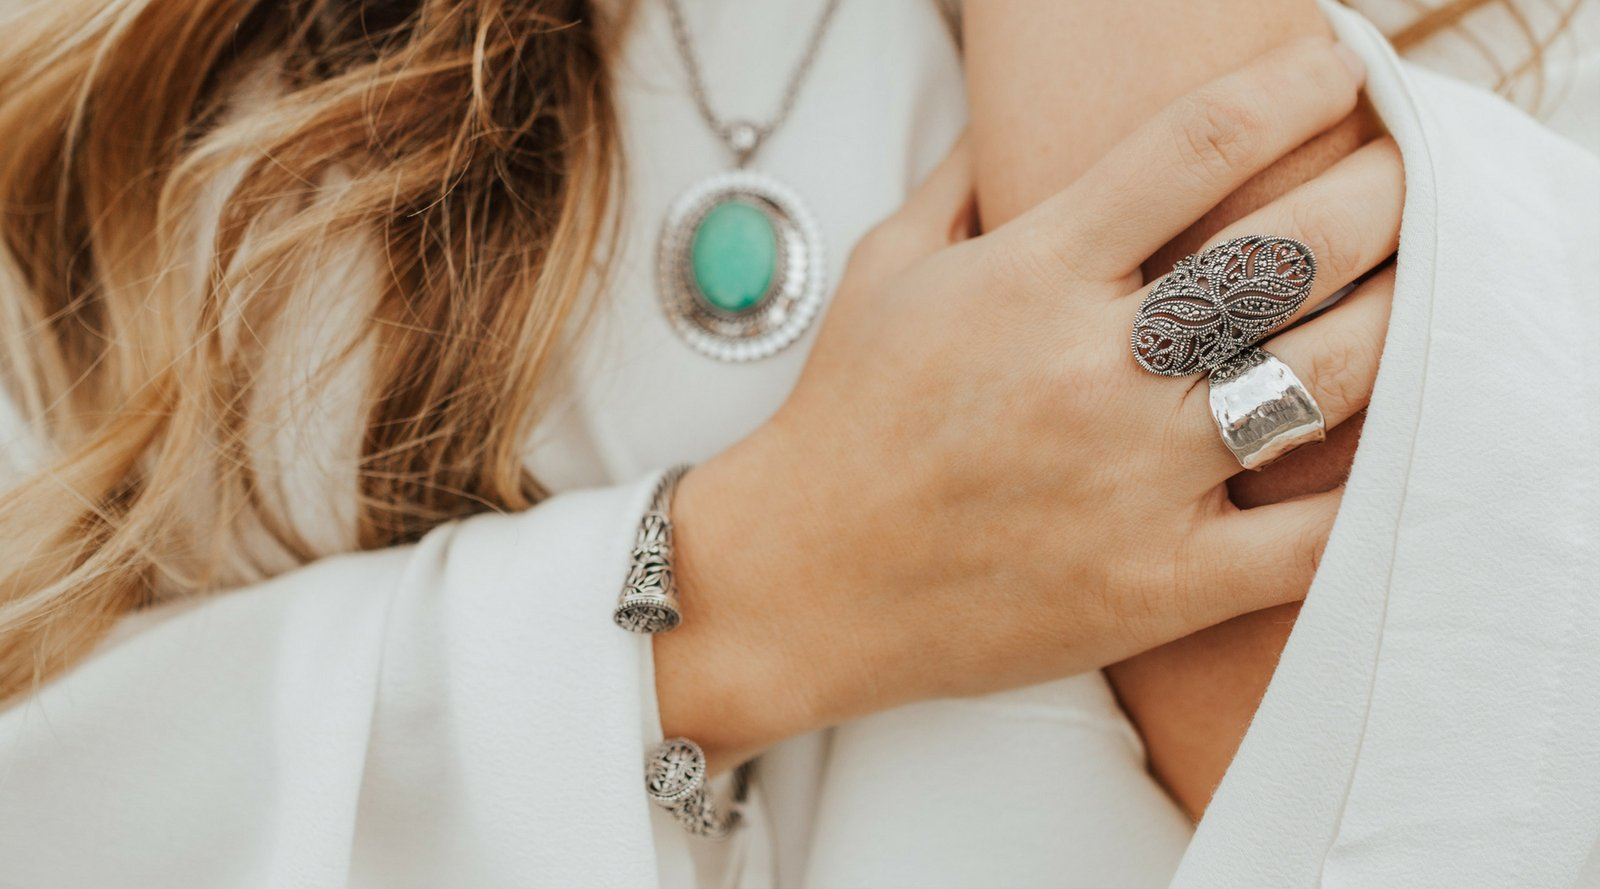 Are you wearing a lot of Silver?